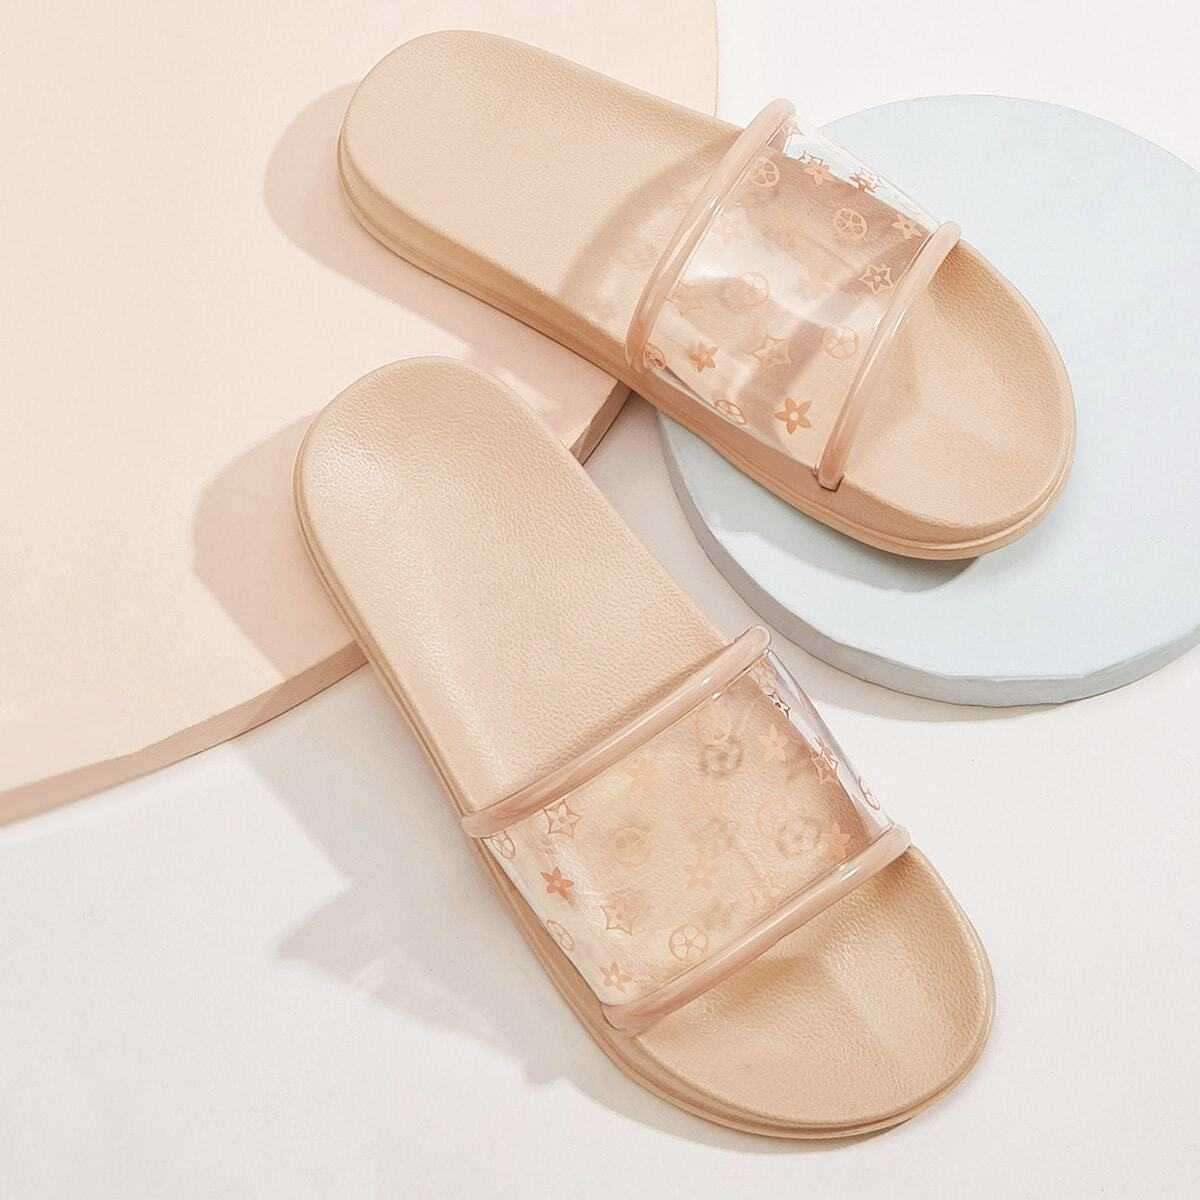 Floral Print Clear Sliders in Pink by ROMWE on GOOFASH